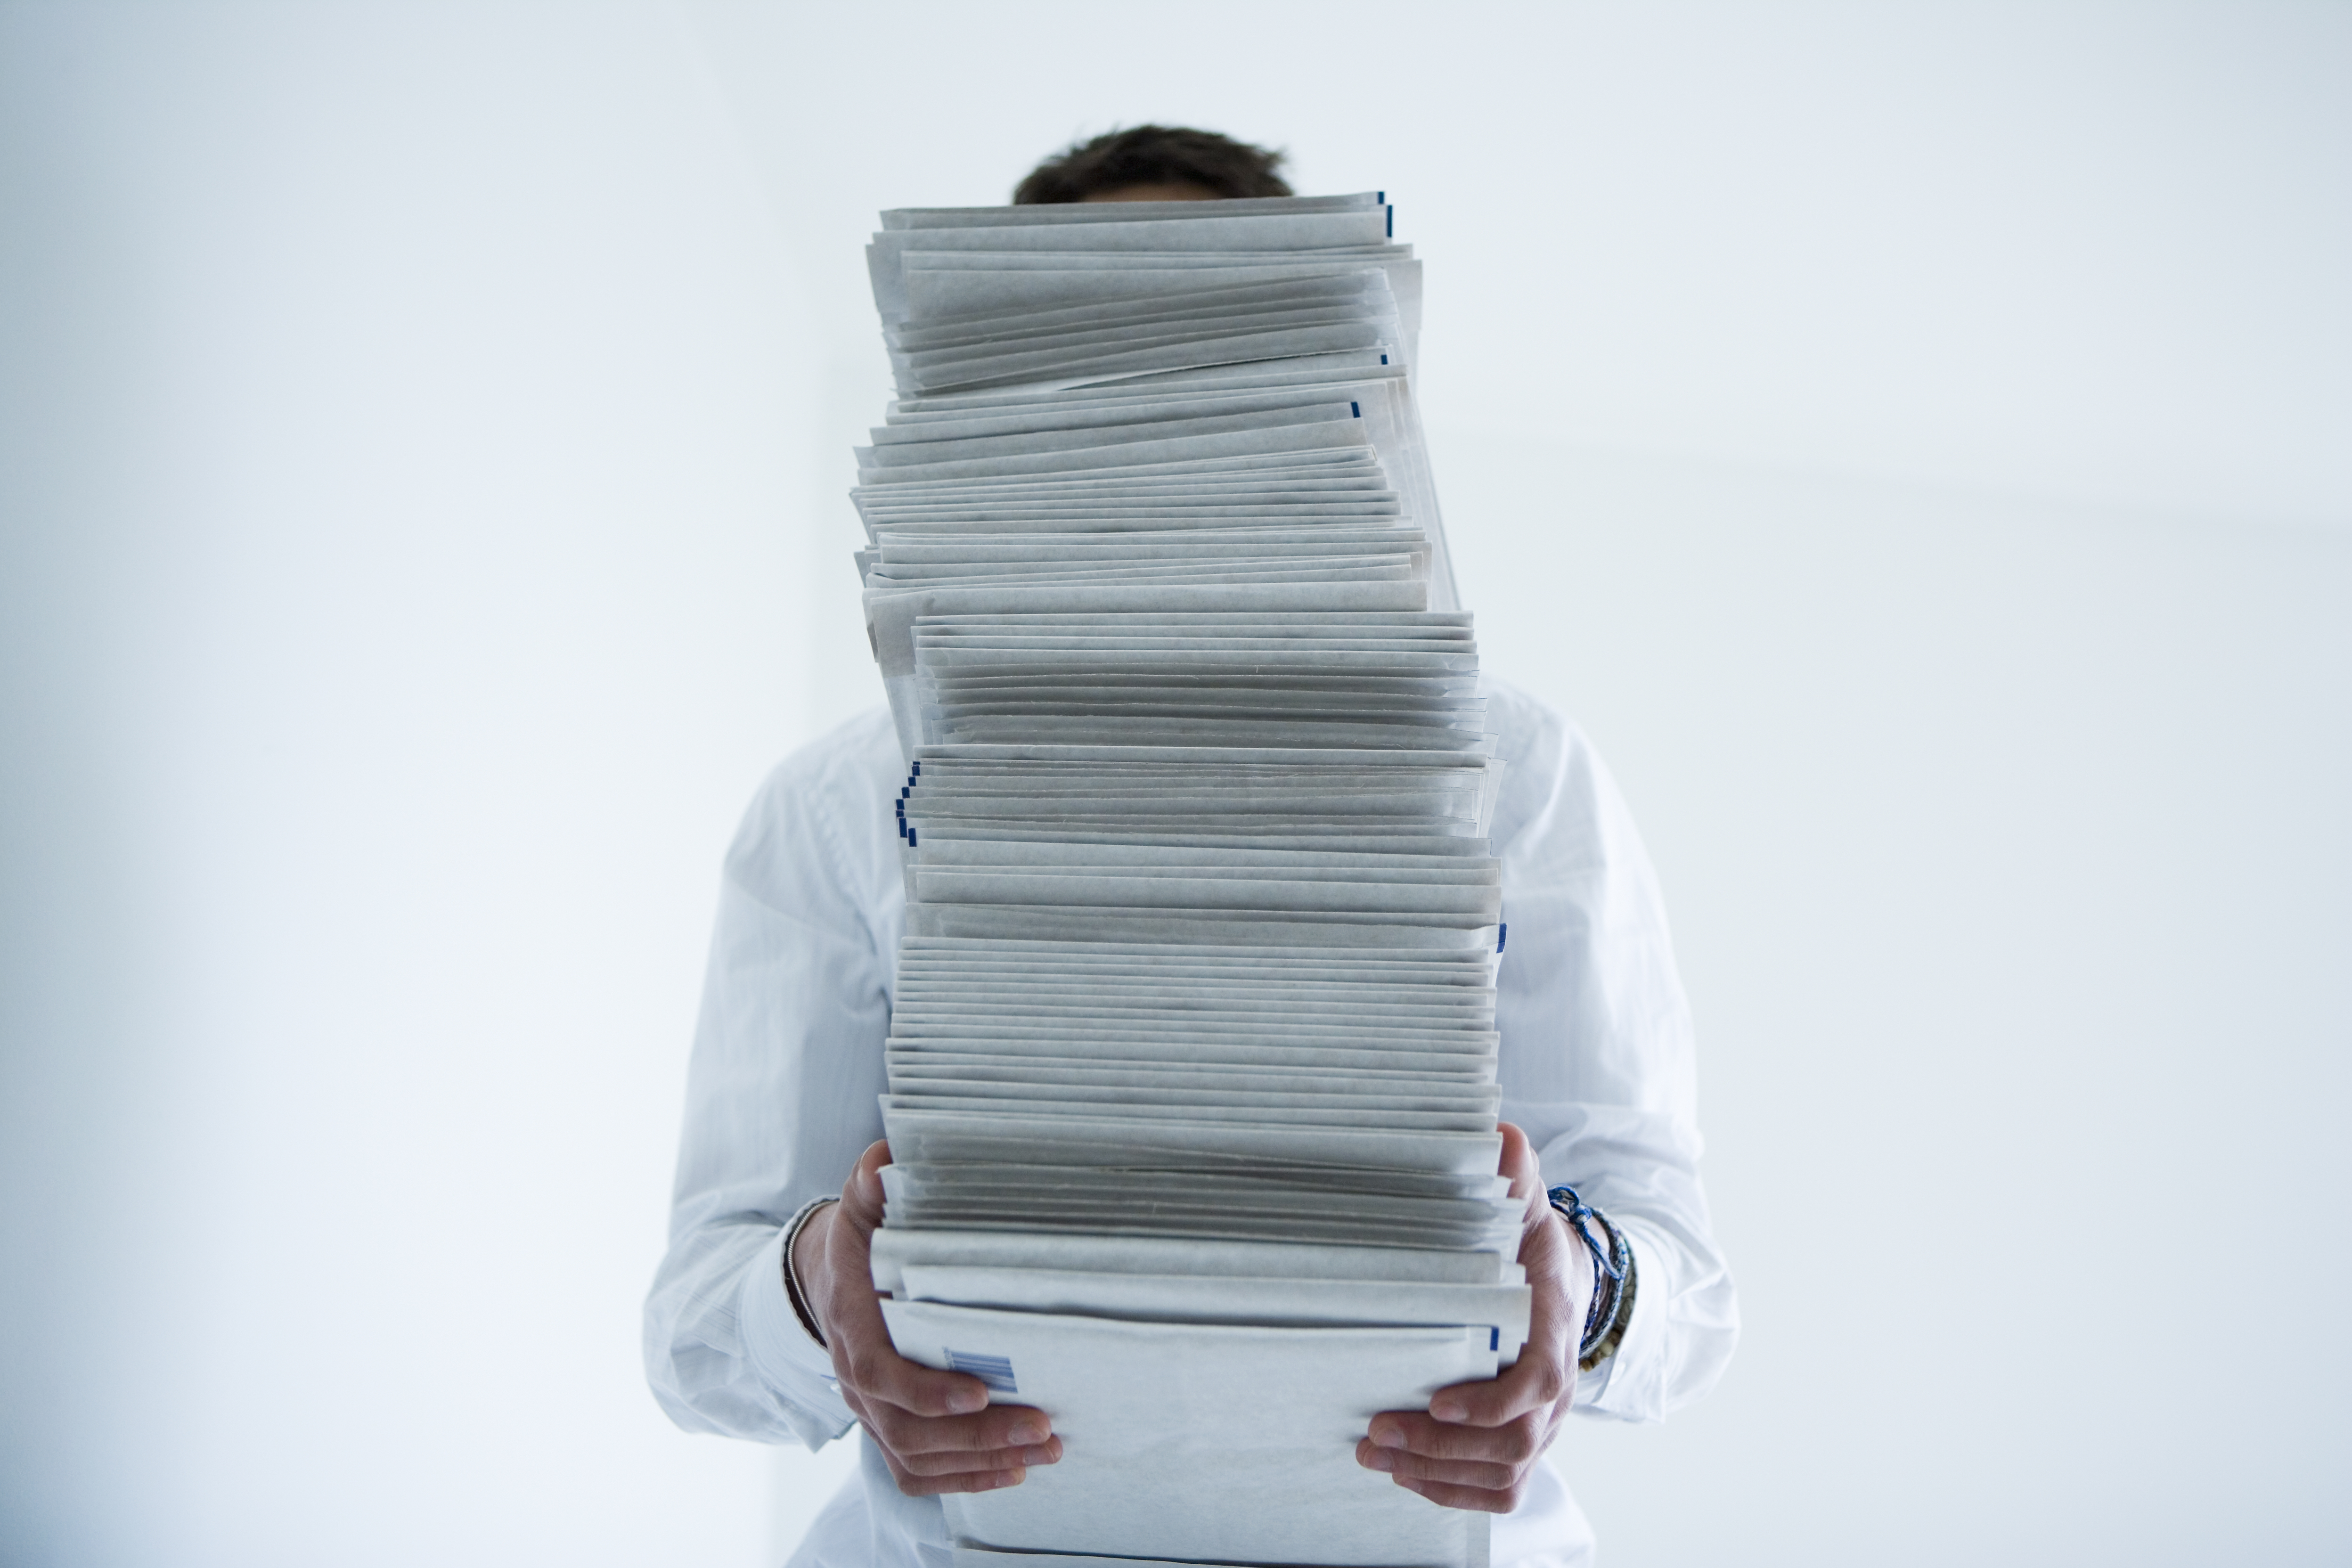 Man holding stack of paper in front of face